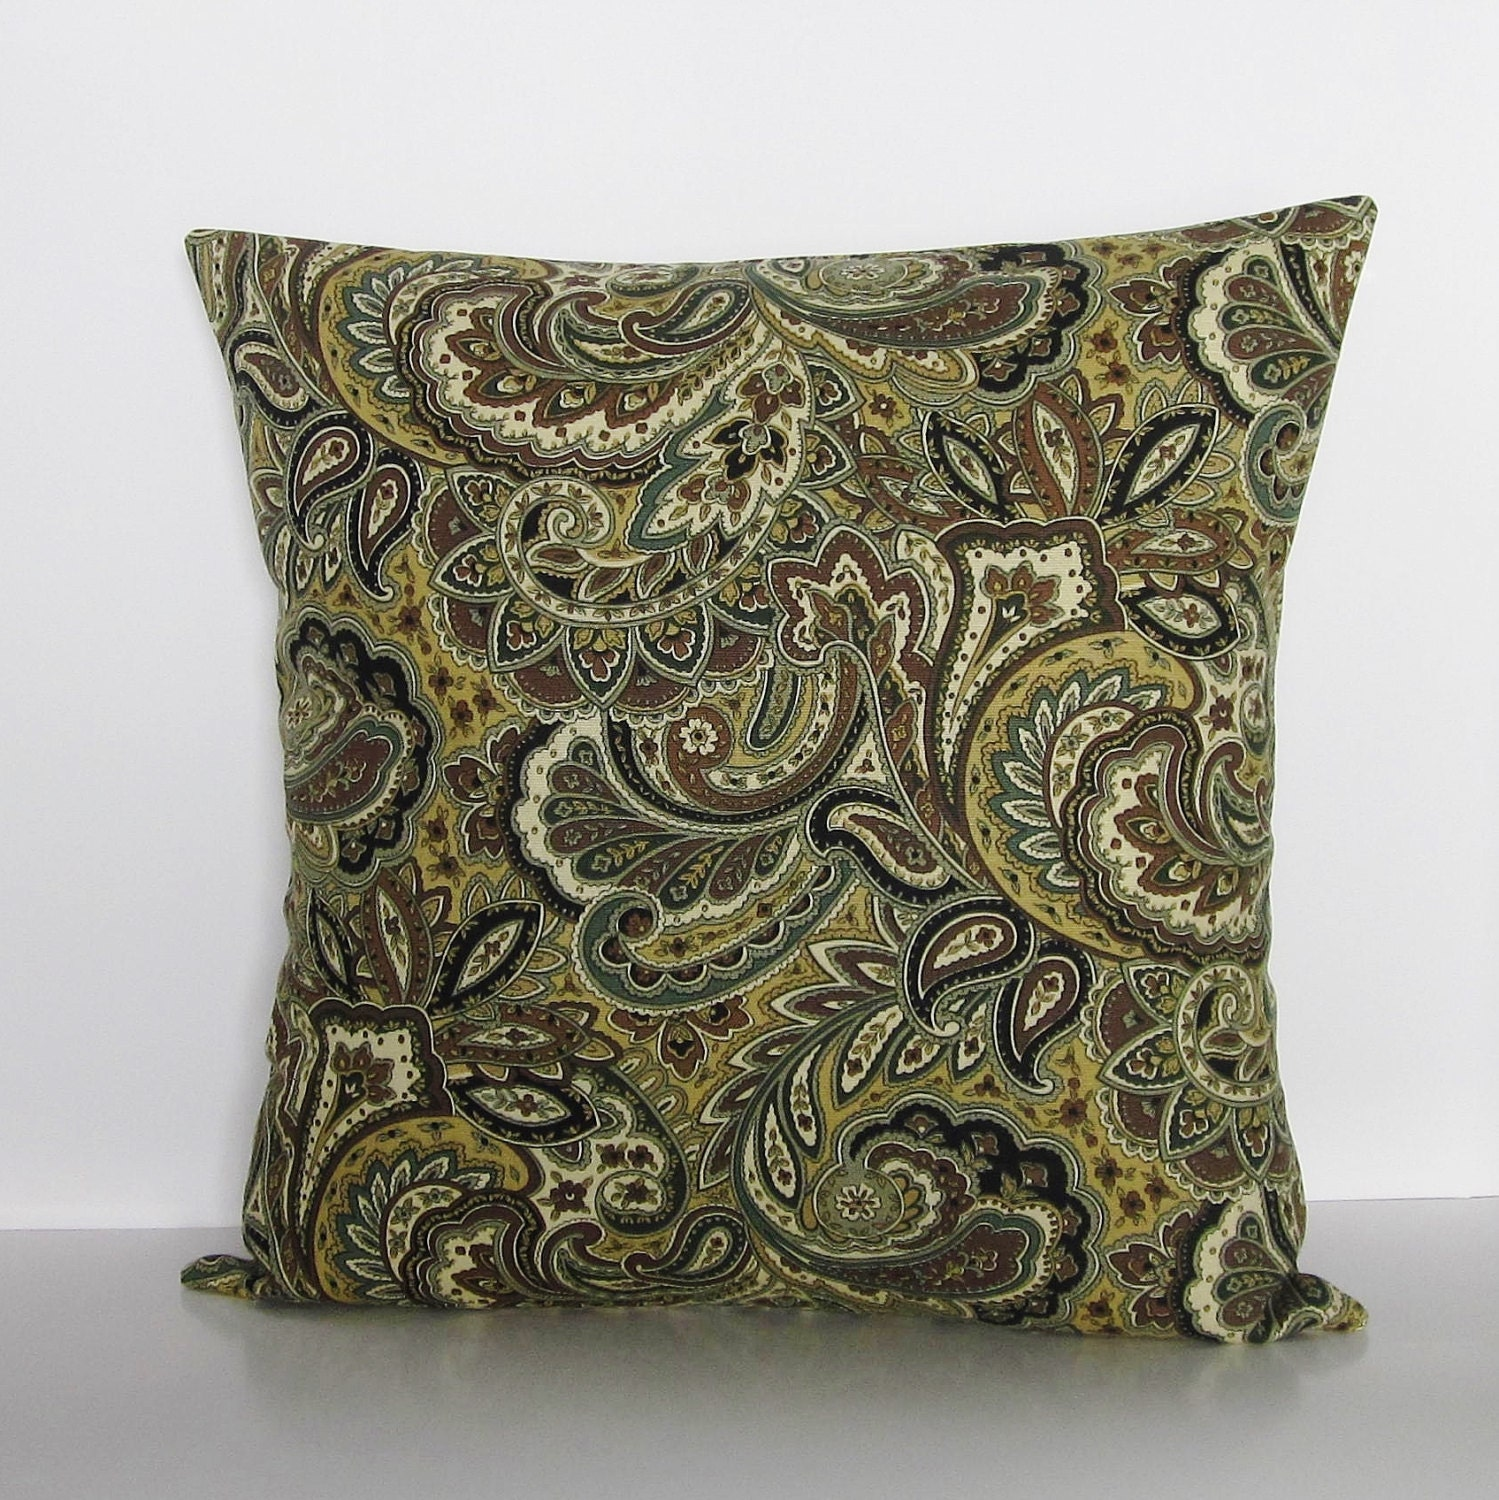 Black And Ivory Throw Pillows : Brown Paisley Pillow Cover Black Ivory Gray Decorative Throw